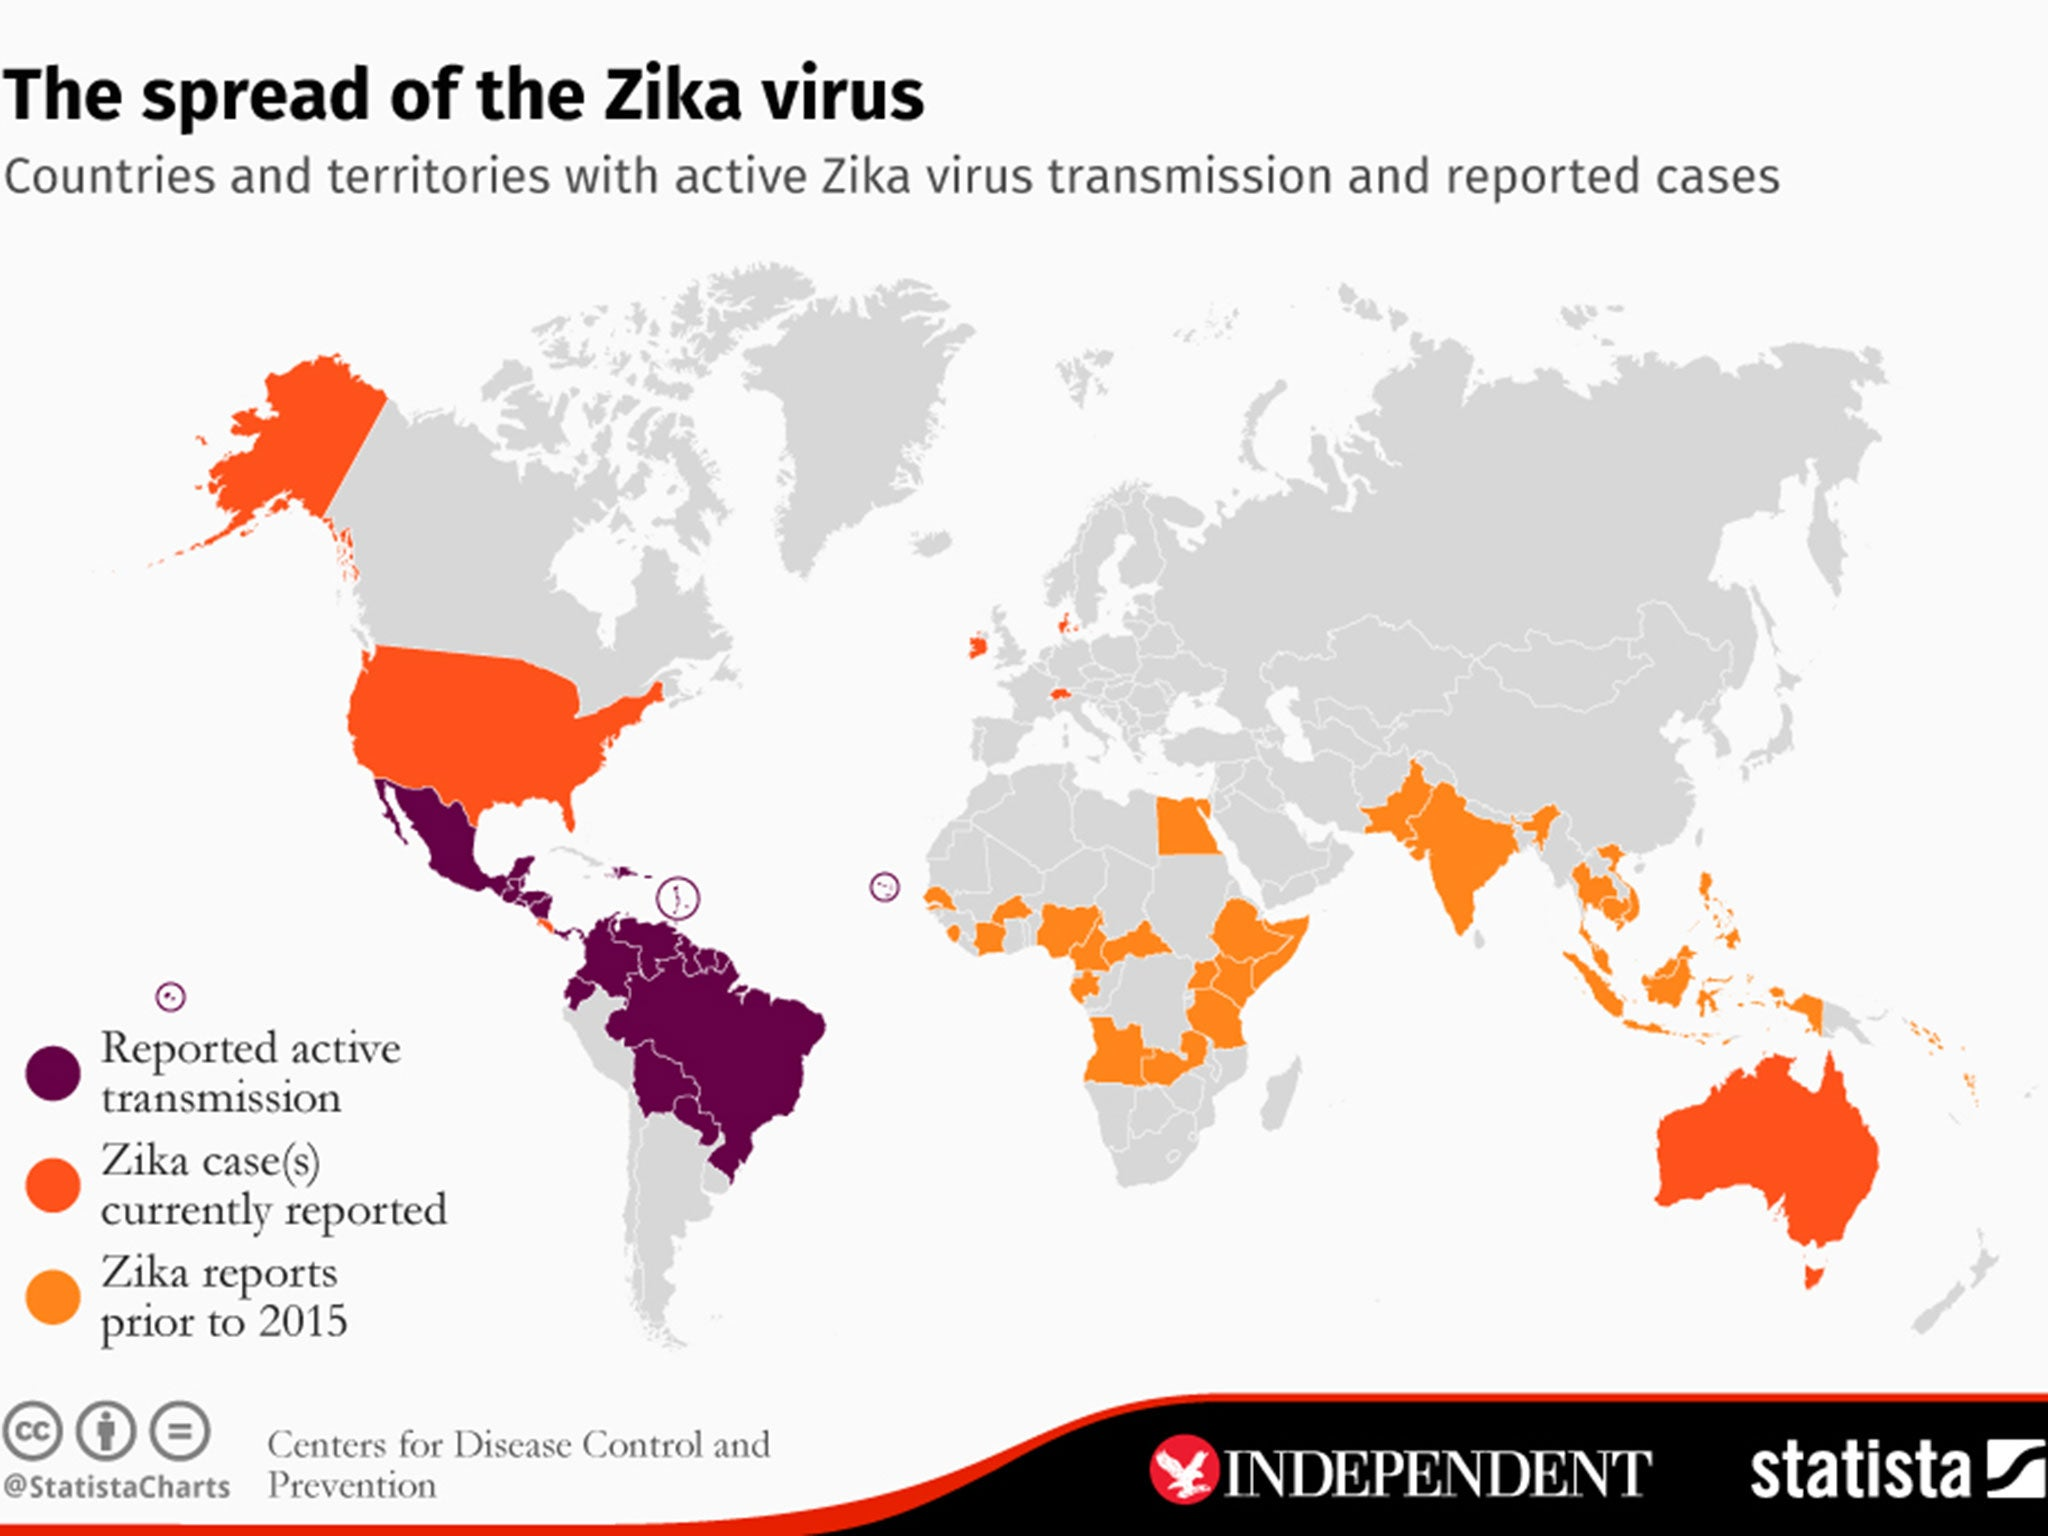 Planning for pregnancy in an outbreak of Zika virus, which has already covered more than 70 countries